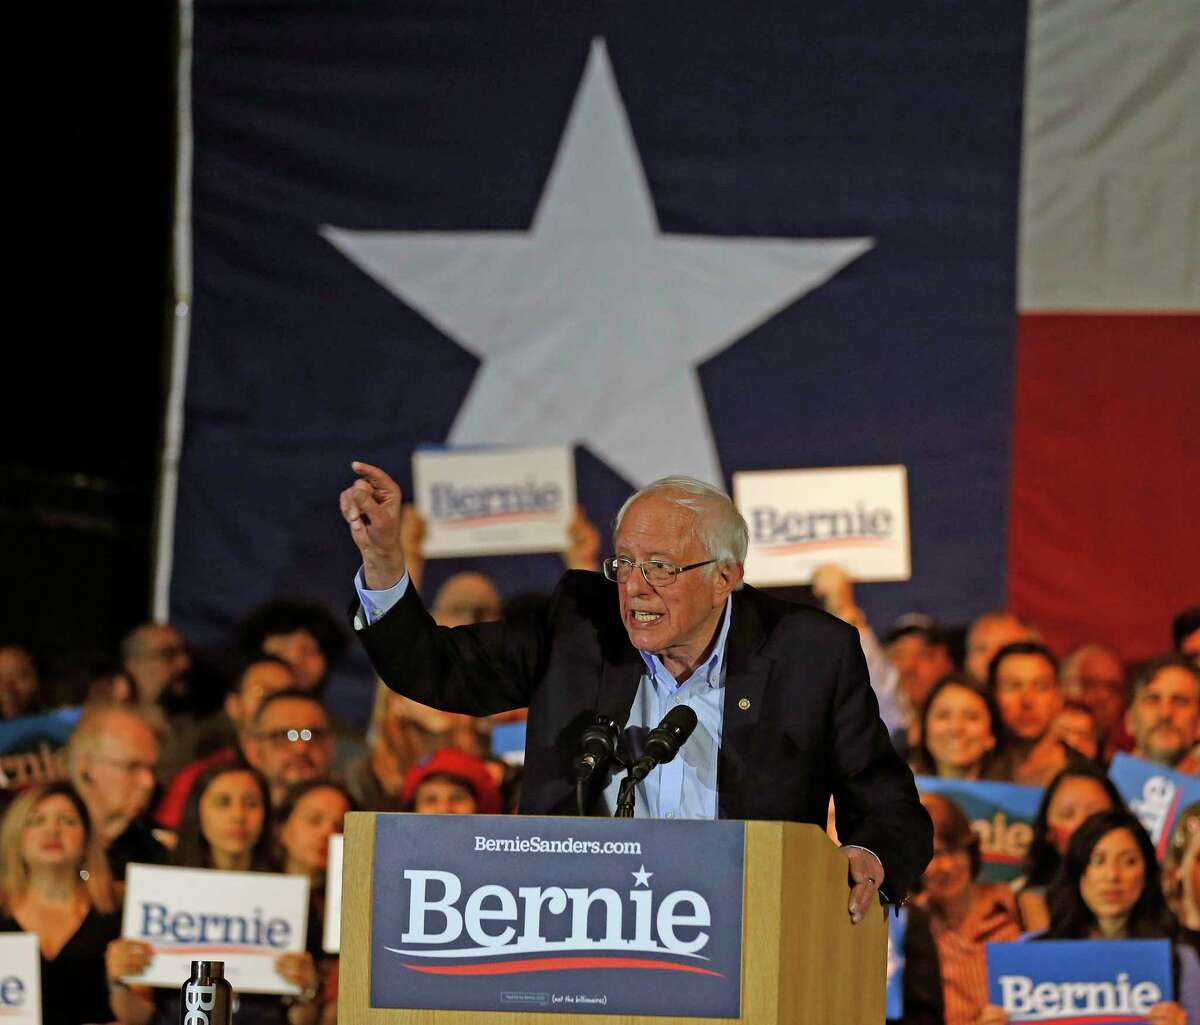 Bernie Sanders speaks to supporters at a campaign rally at the Cowboys Dance Hall on Saturday, February 22, 2020.